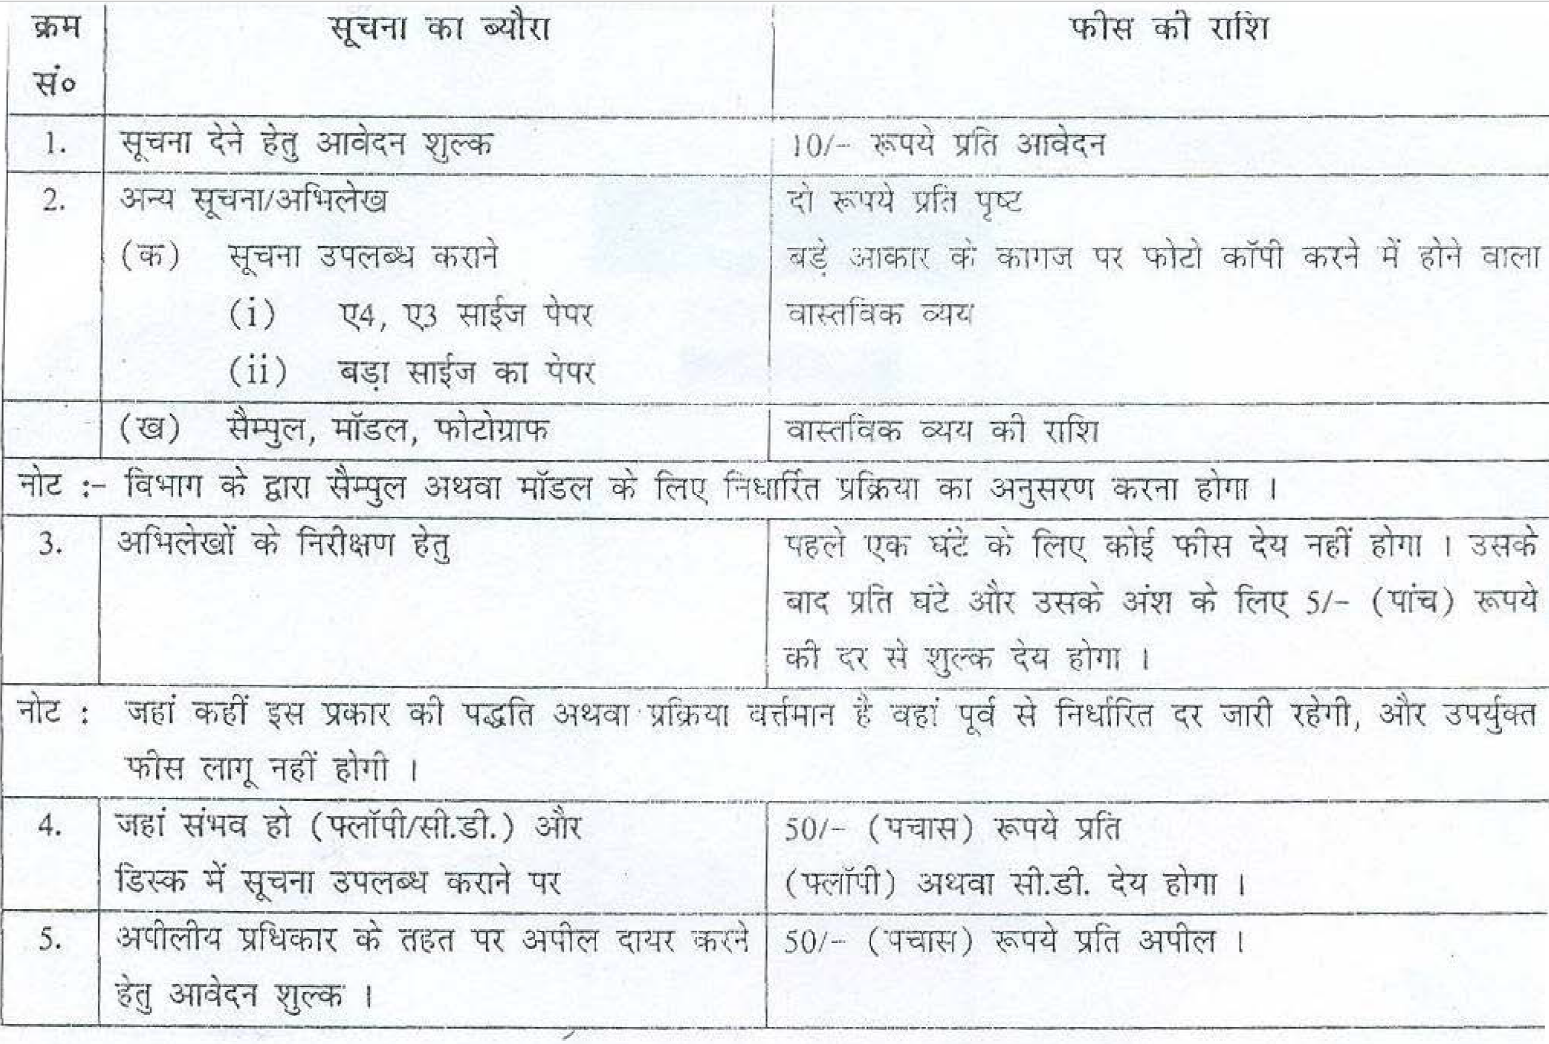 Application Fees for RTI in Bihar Legislative Assembly